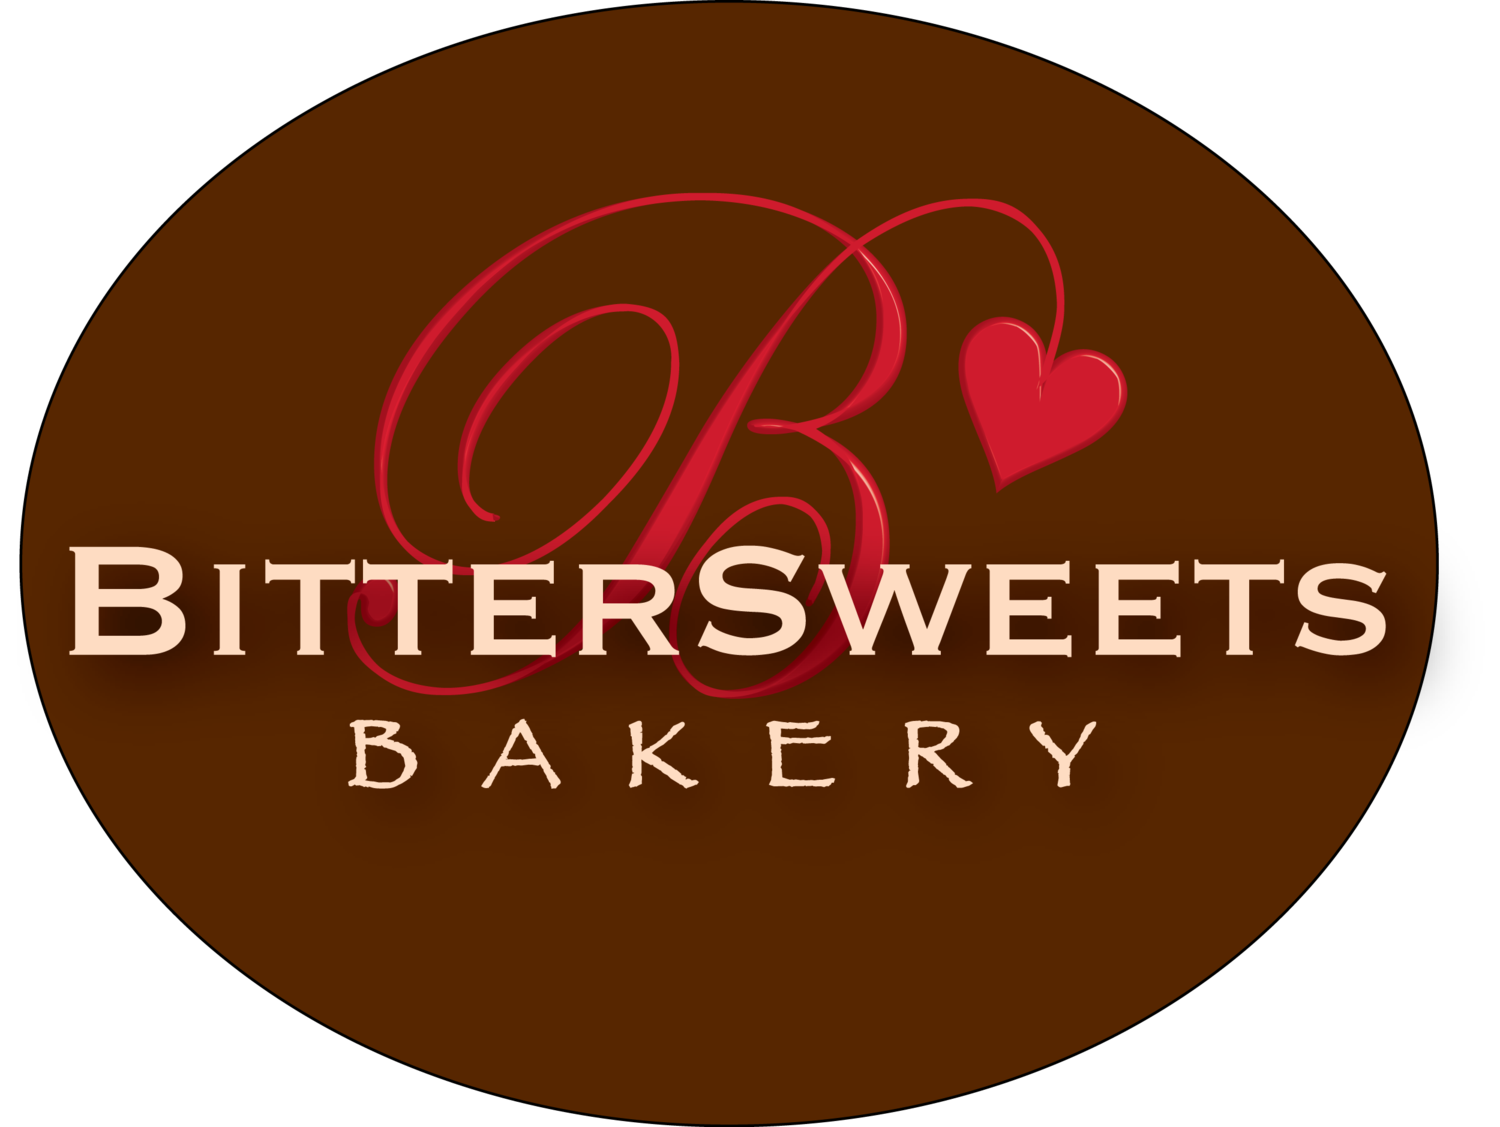 BITTERSWEETS BAKERY Featuring STUNNING WEDDING CAKES Gourmet Cupcakes Made From Scratch Everyday